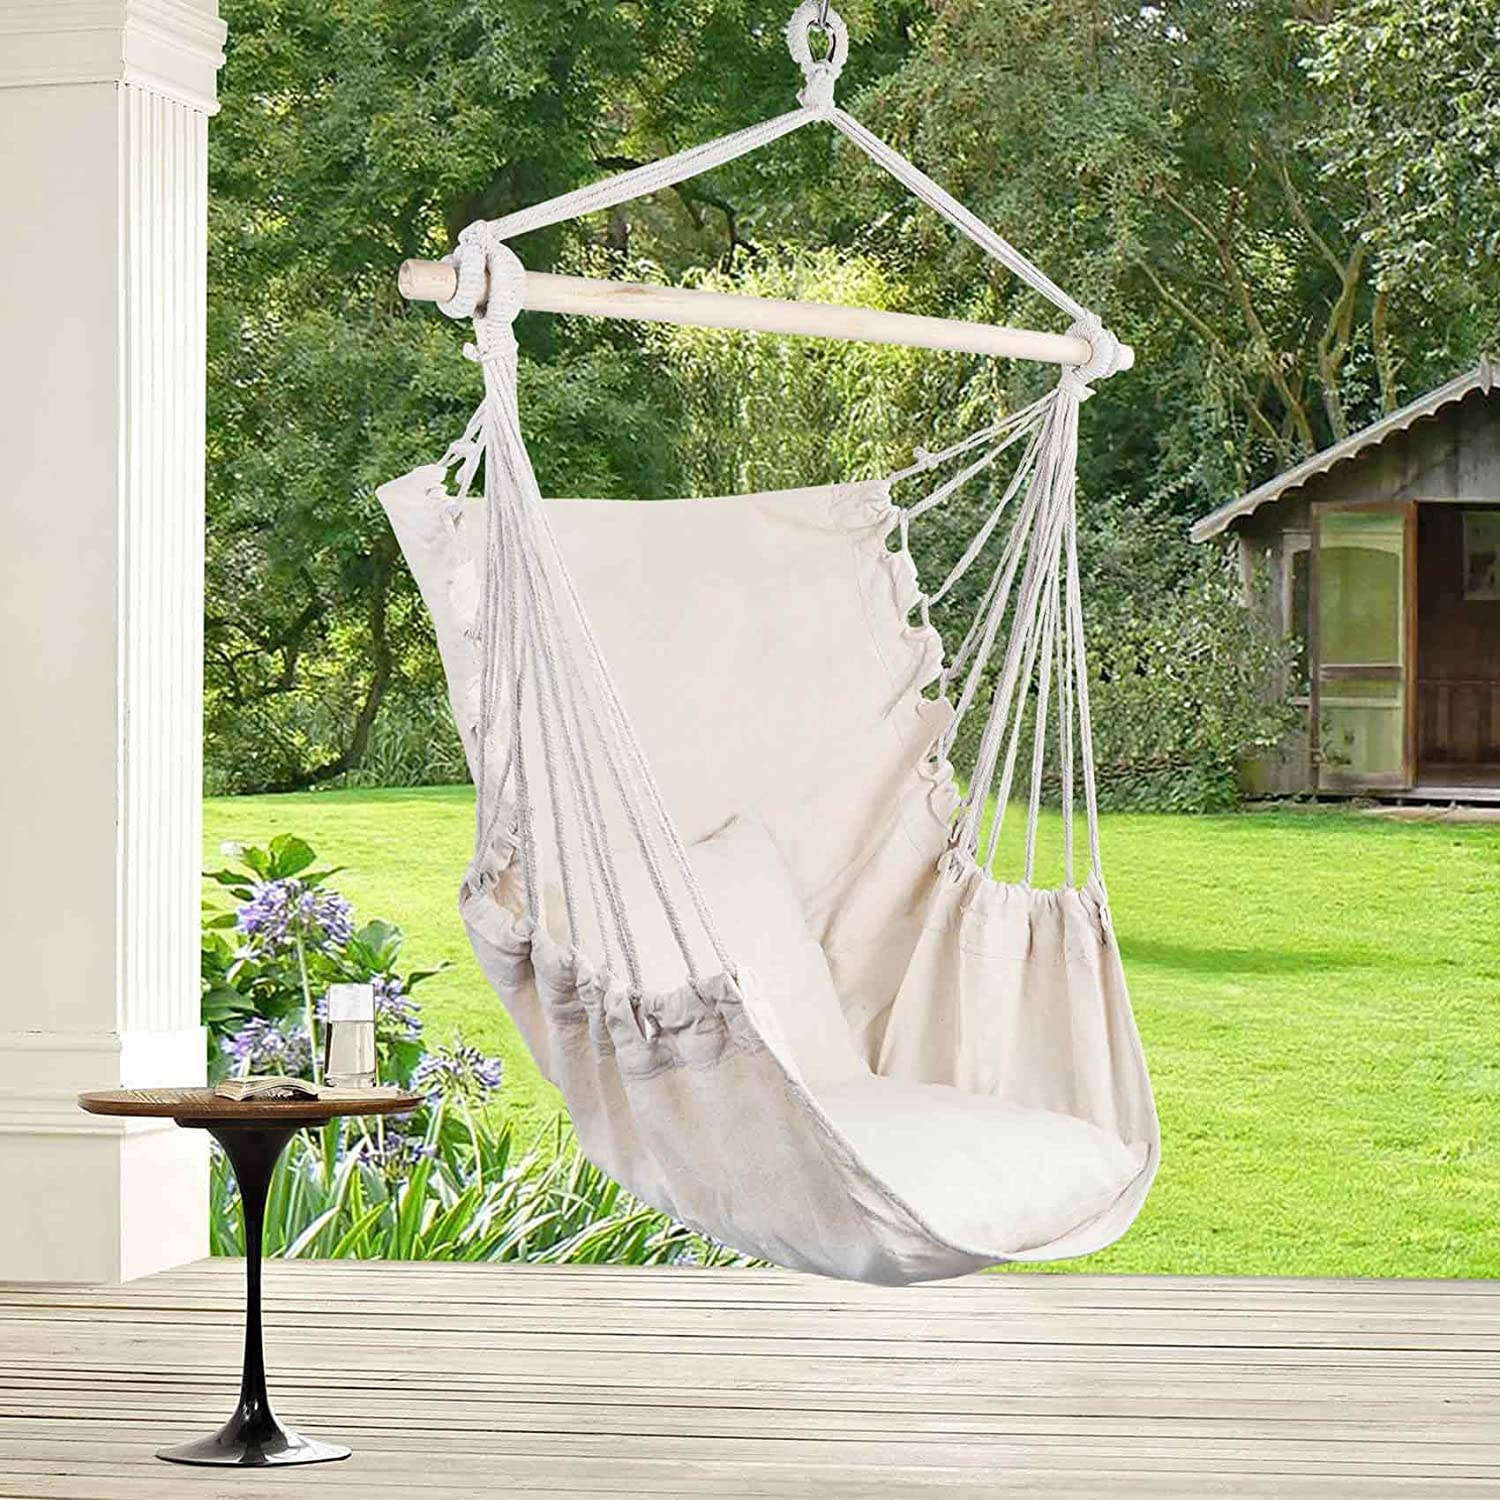 AerWo Hanging Chair Large Hammock Chair Swing Seat, Hanging Swing Chair Cotton Weave for Superior Comfort & Durability Perfect Indoor or Outdoor Home Bedroom Patio Yard Garden, (2 Seat Cushions)